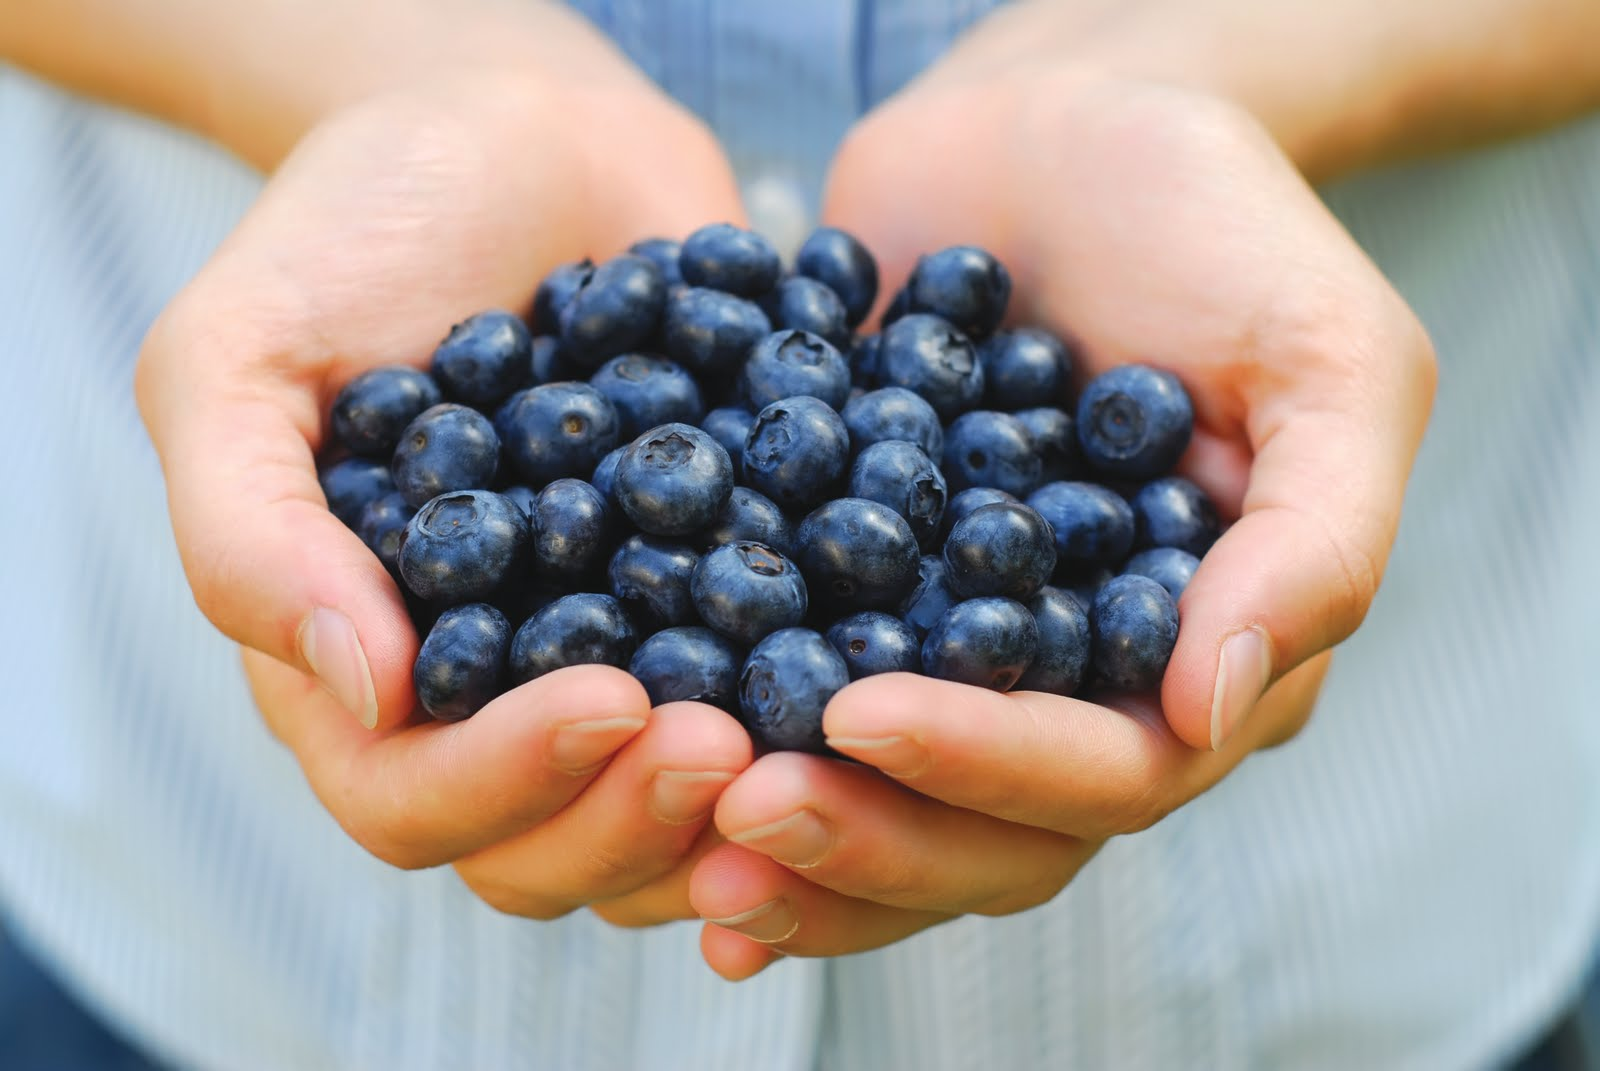 Holistic Pain Remedies Blueberries Holistic Pain Remedies   Let Food Be Thy Medicine